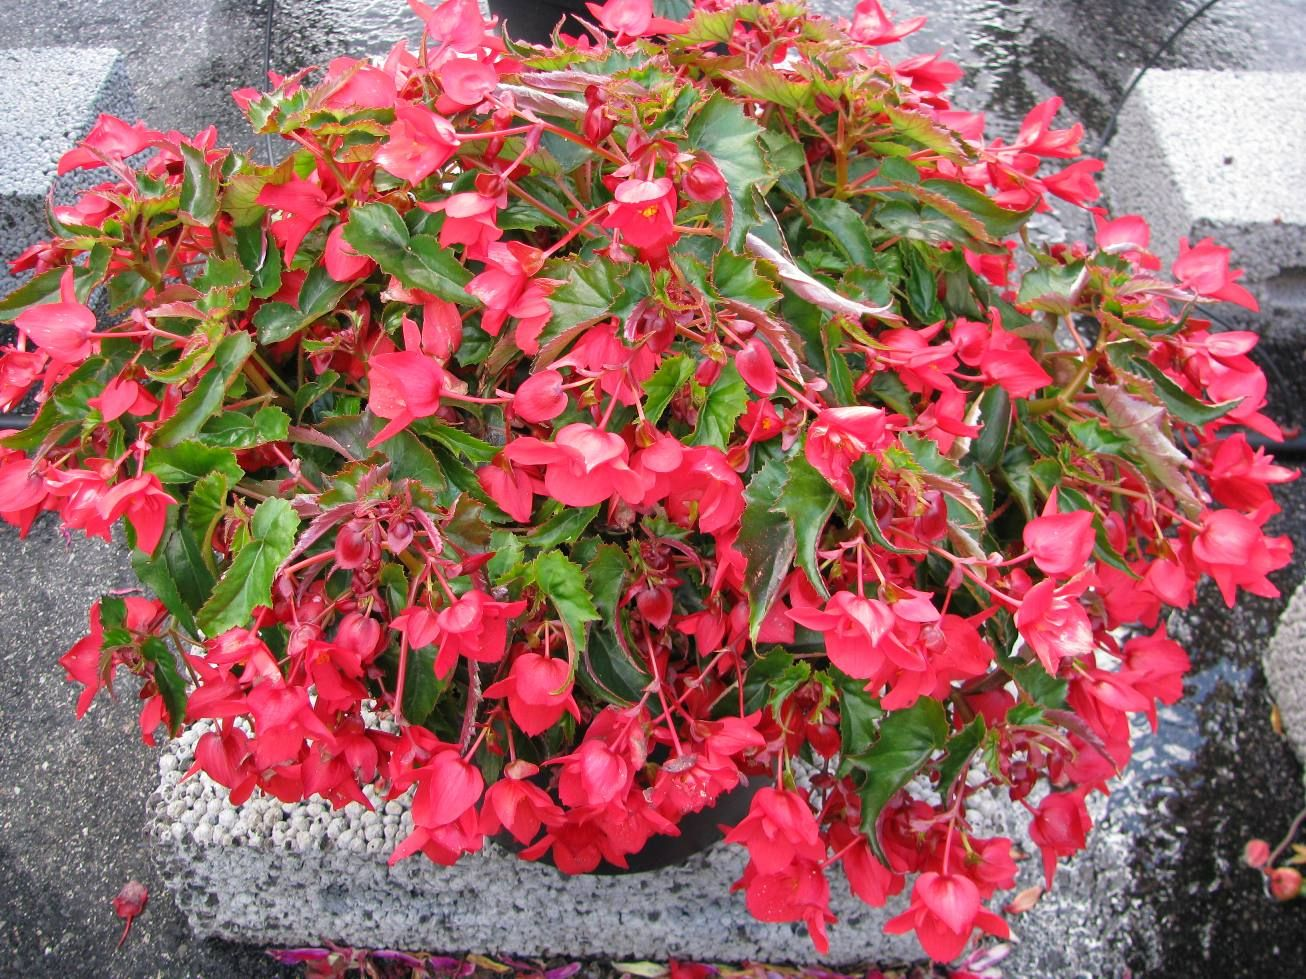 eutopia begonia pendula m rtha red seems to be another tuberous hybrid portrait plants. Black Bedroom Furniture Sets. Home Design Ideas